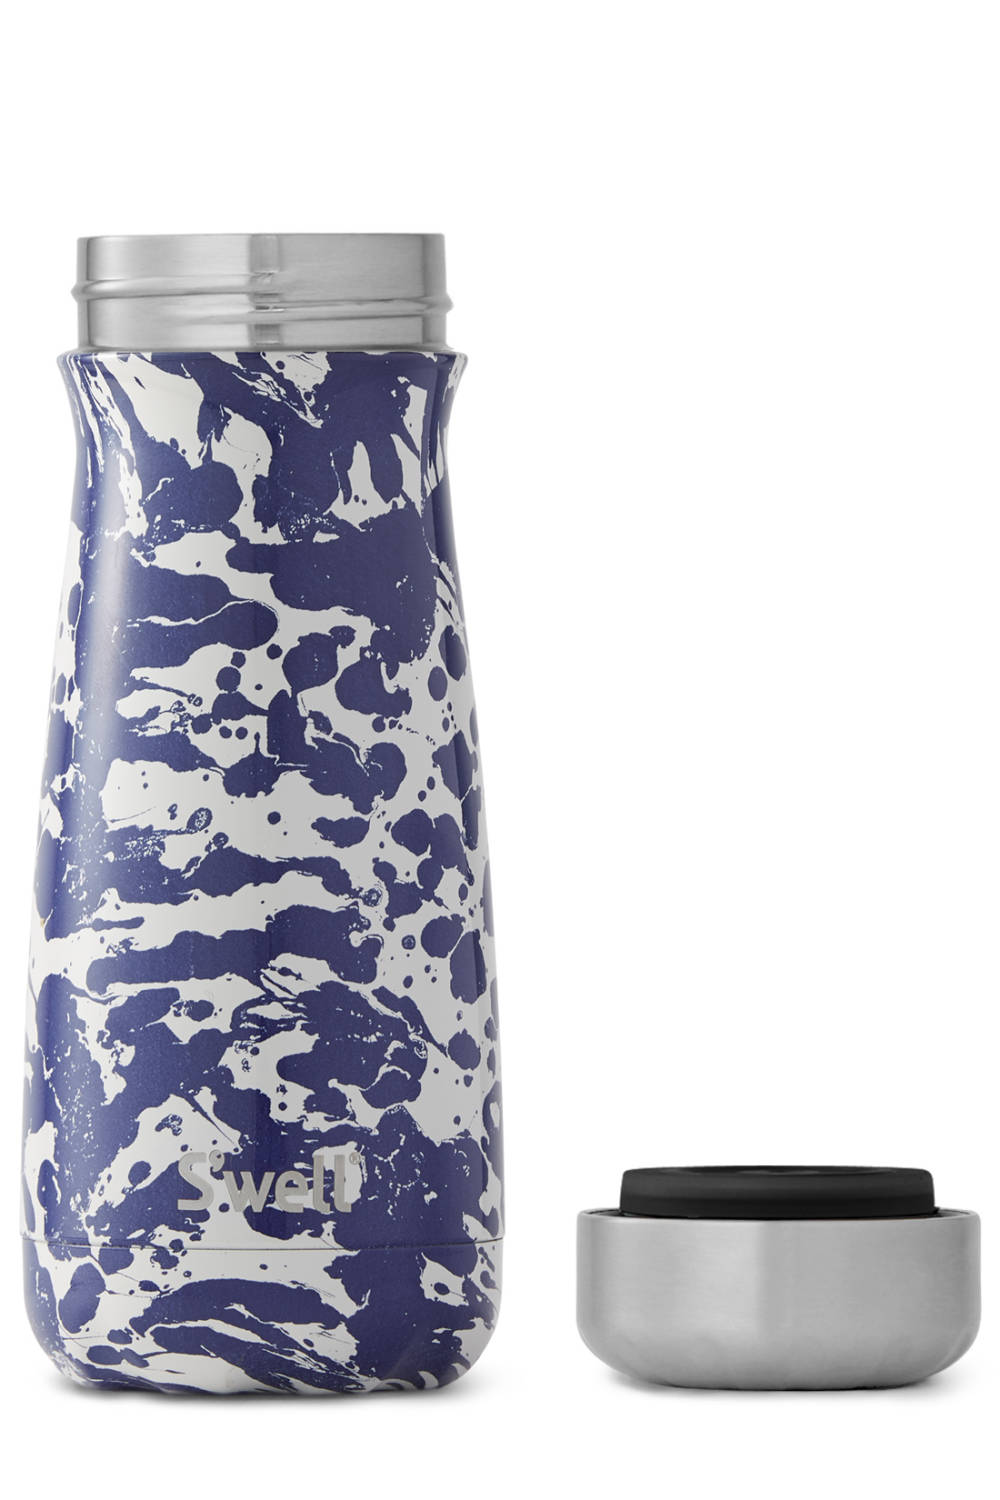 Swell Enamel Blue 16oz Water Bottle